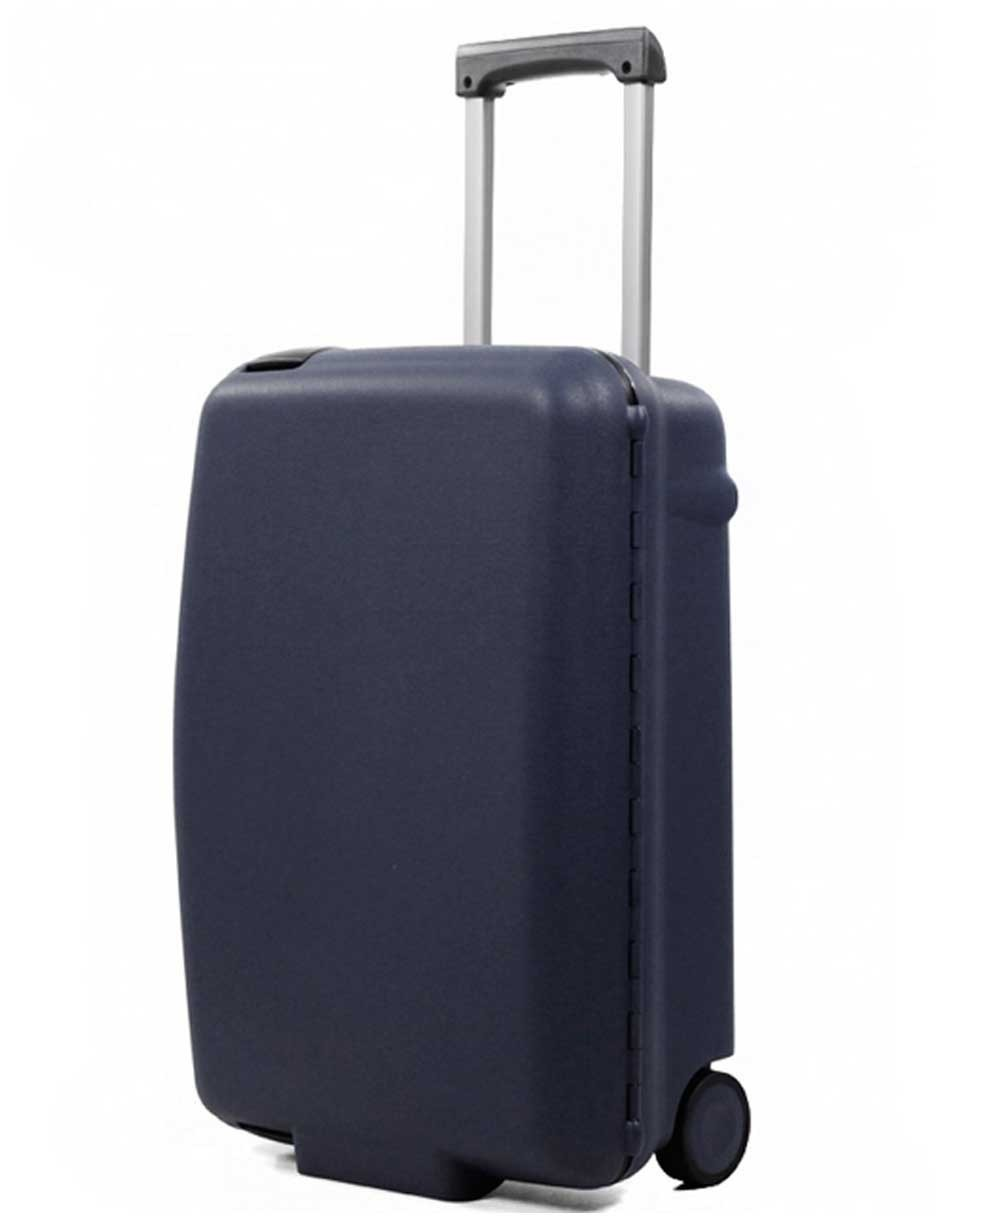 Samsonite Cabin Collection Maleta de mano Azul Marino (Foto )